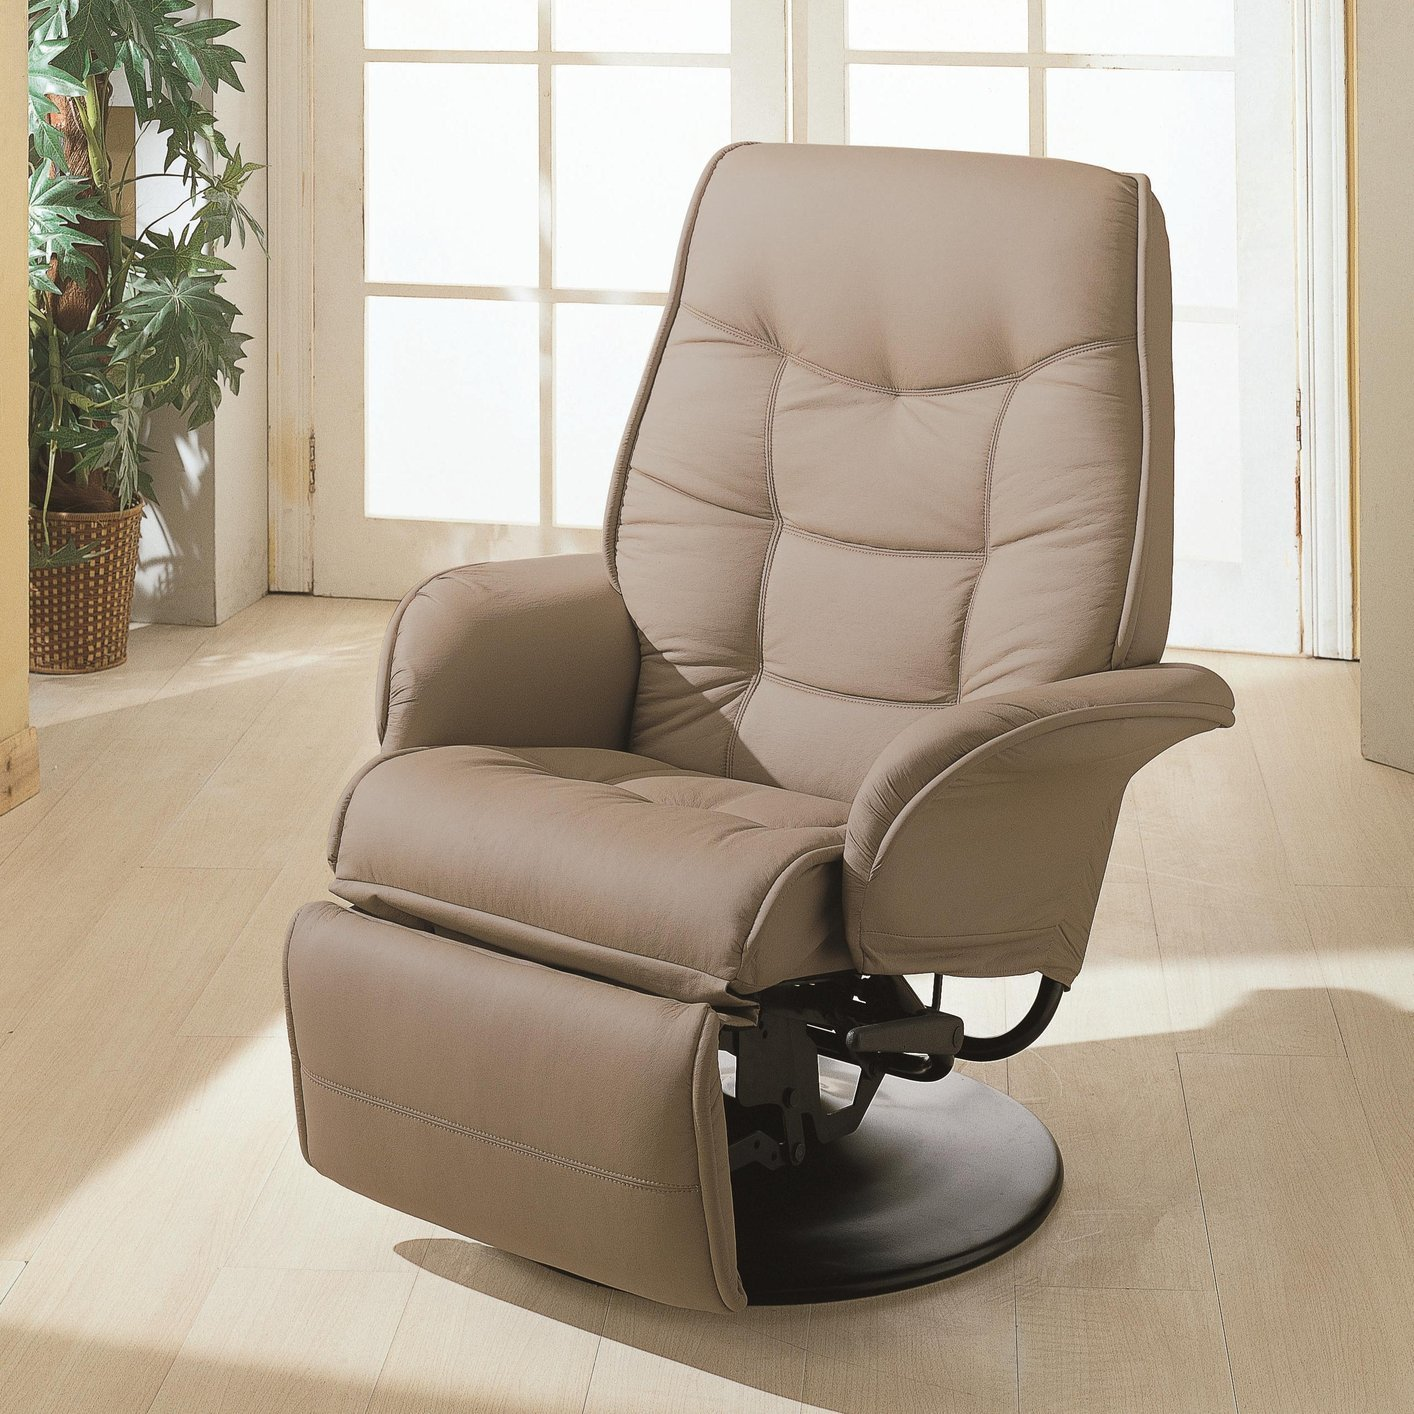 Coaster 7502 beige leather reclining chair steal a sofa for Furniture 90036